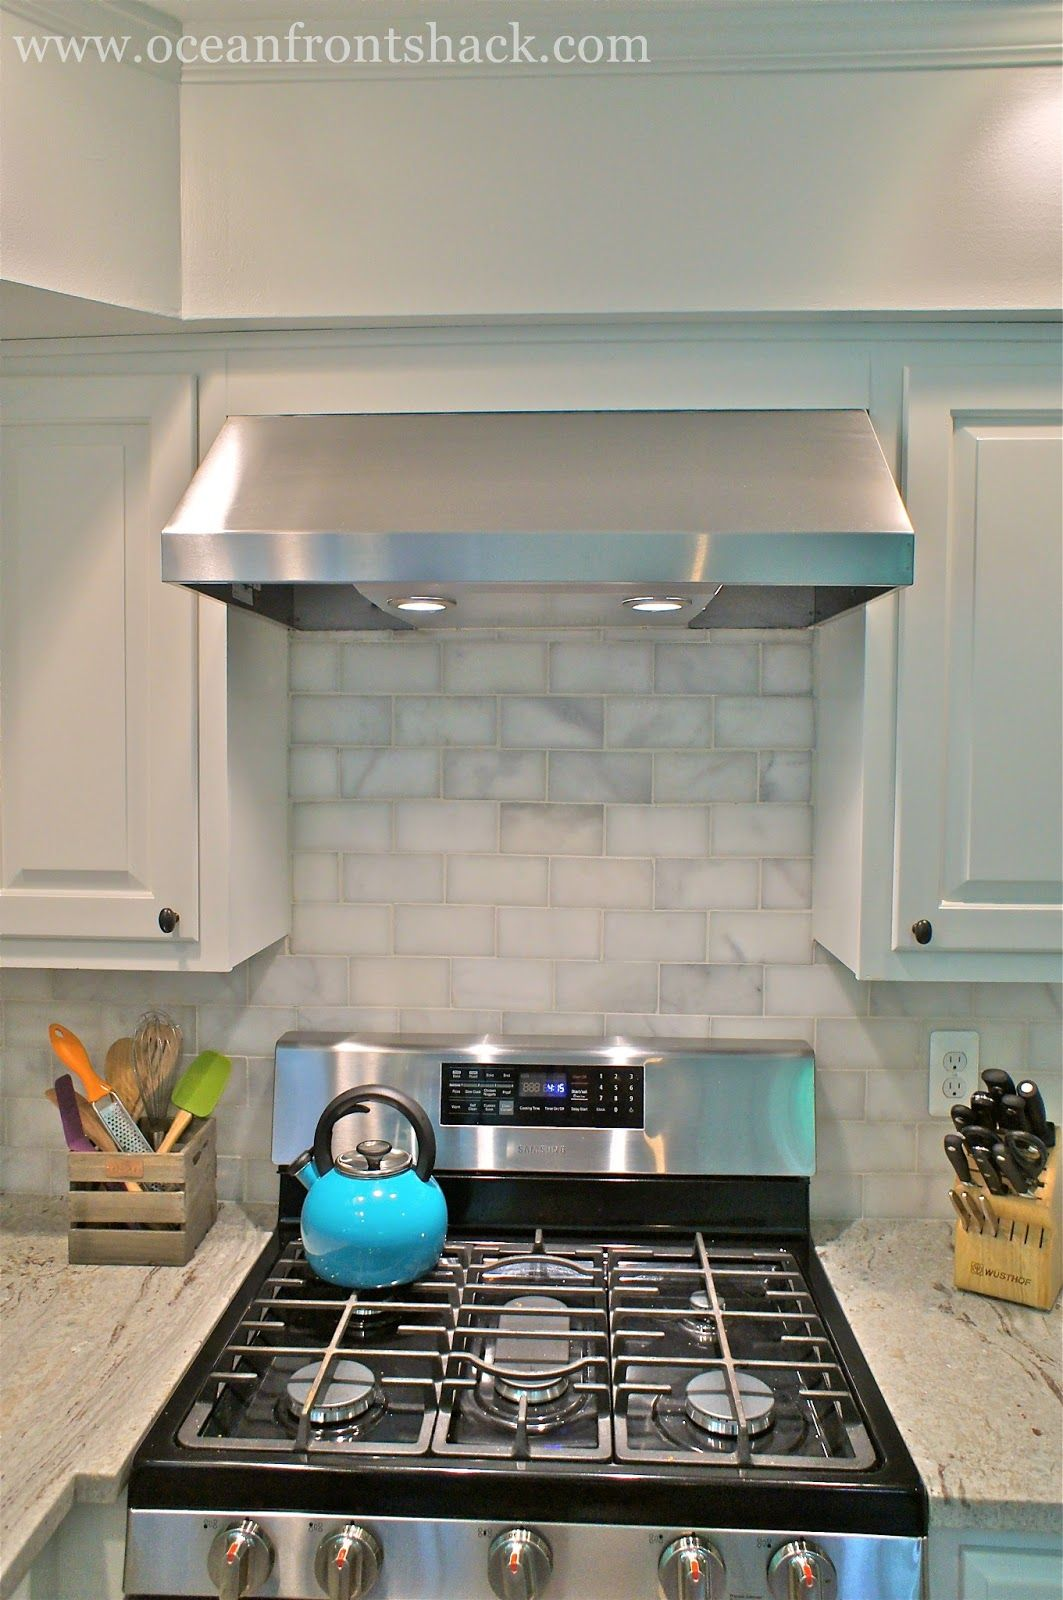 Replacing Microwave With Range Hood Replace A Built In Microwave With A Stylish Range Hood More Budget Kitchen Makeover Kitchen Remodel Small Kitchen Redo